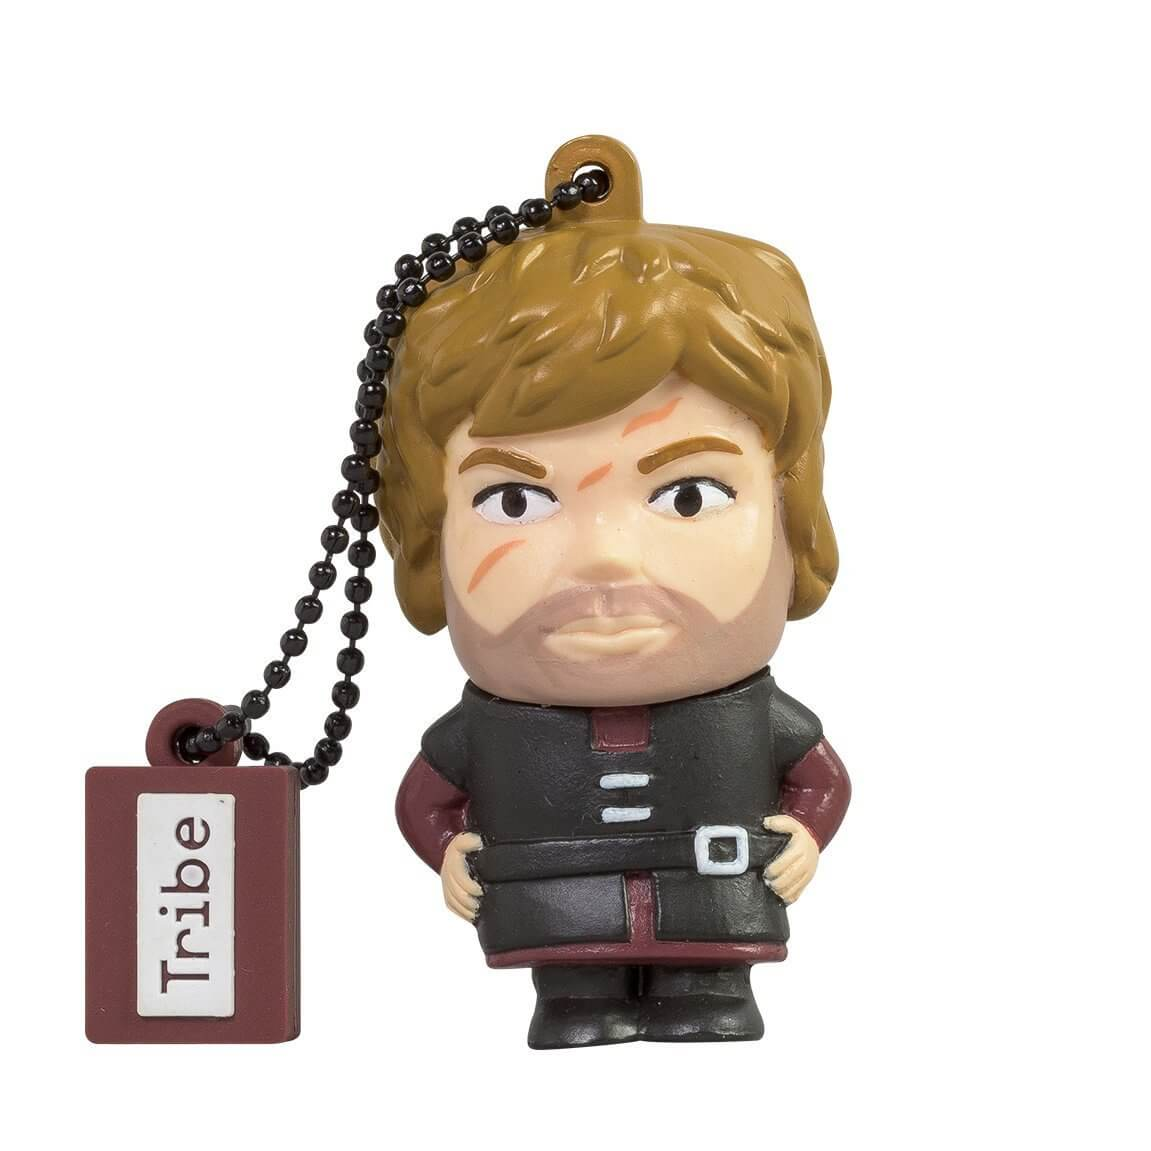 USB Tribe Game of Thrones Tyrion USB Flash Drive 16GB - USB флаш памет 16GB